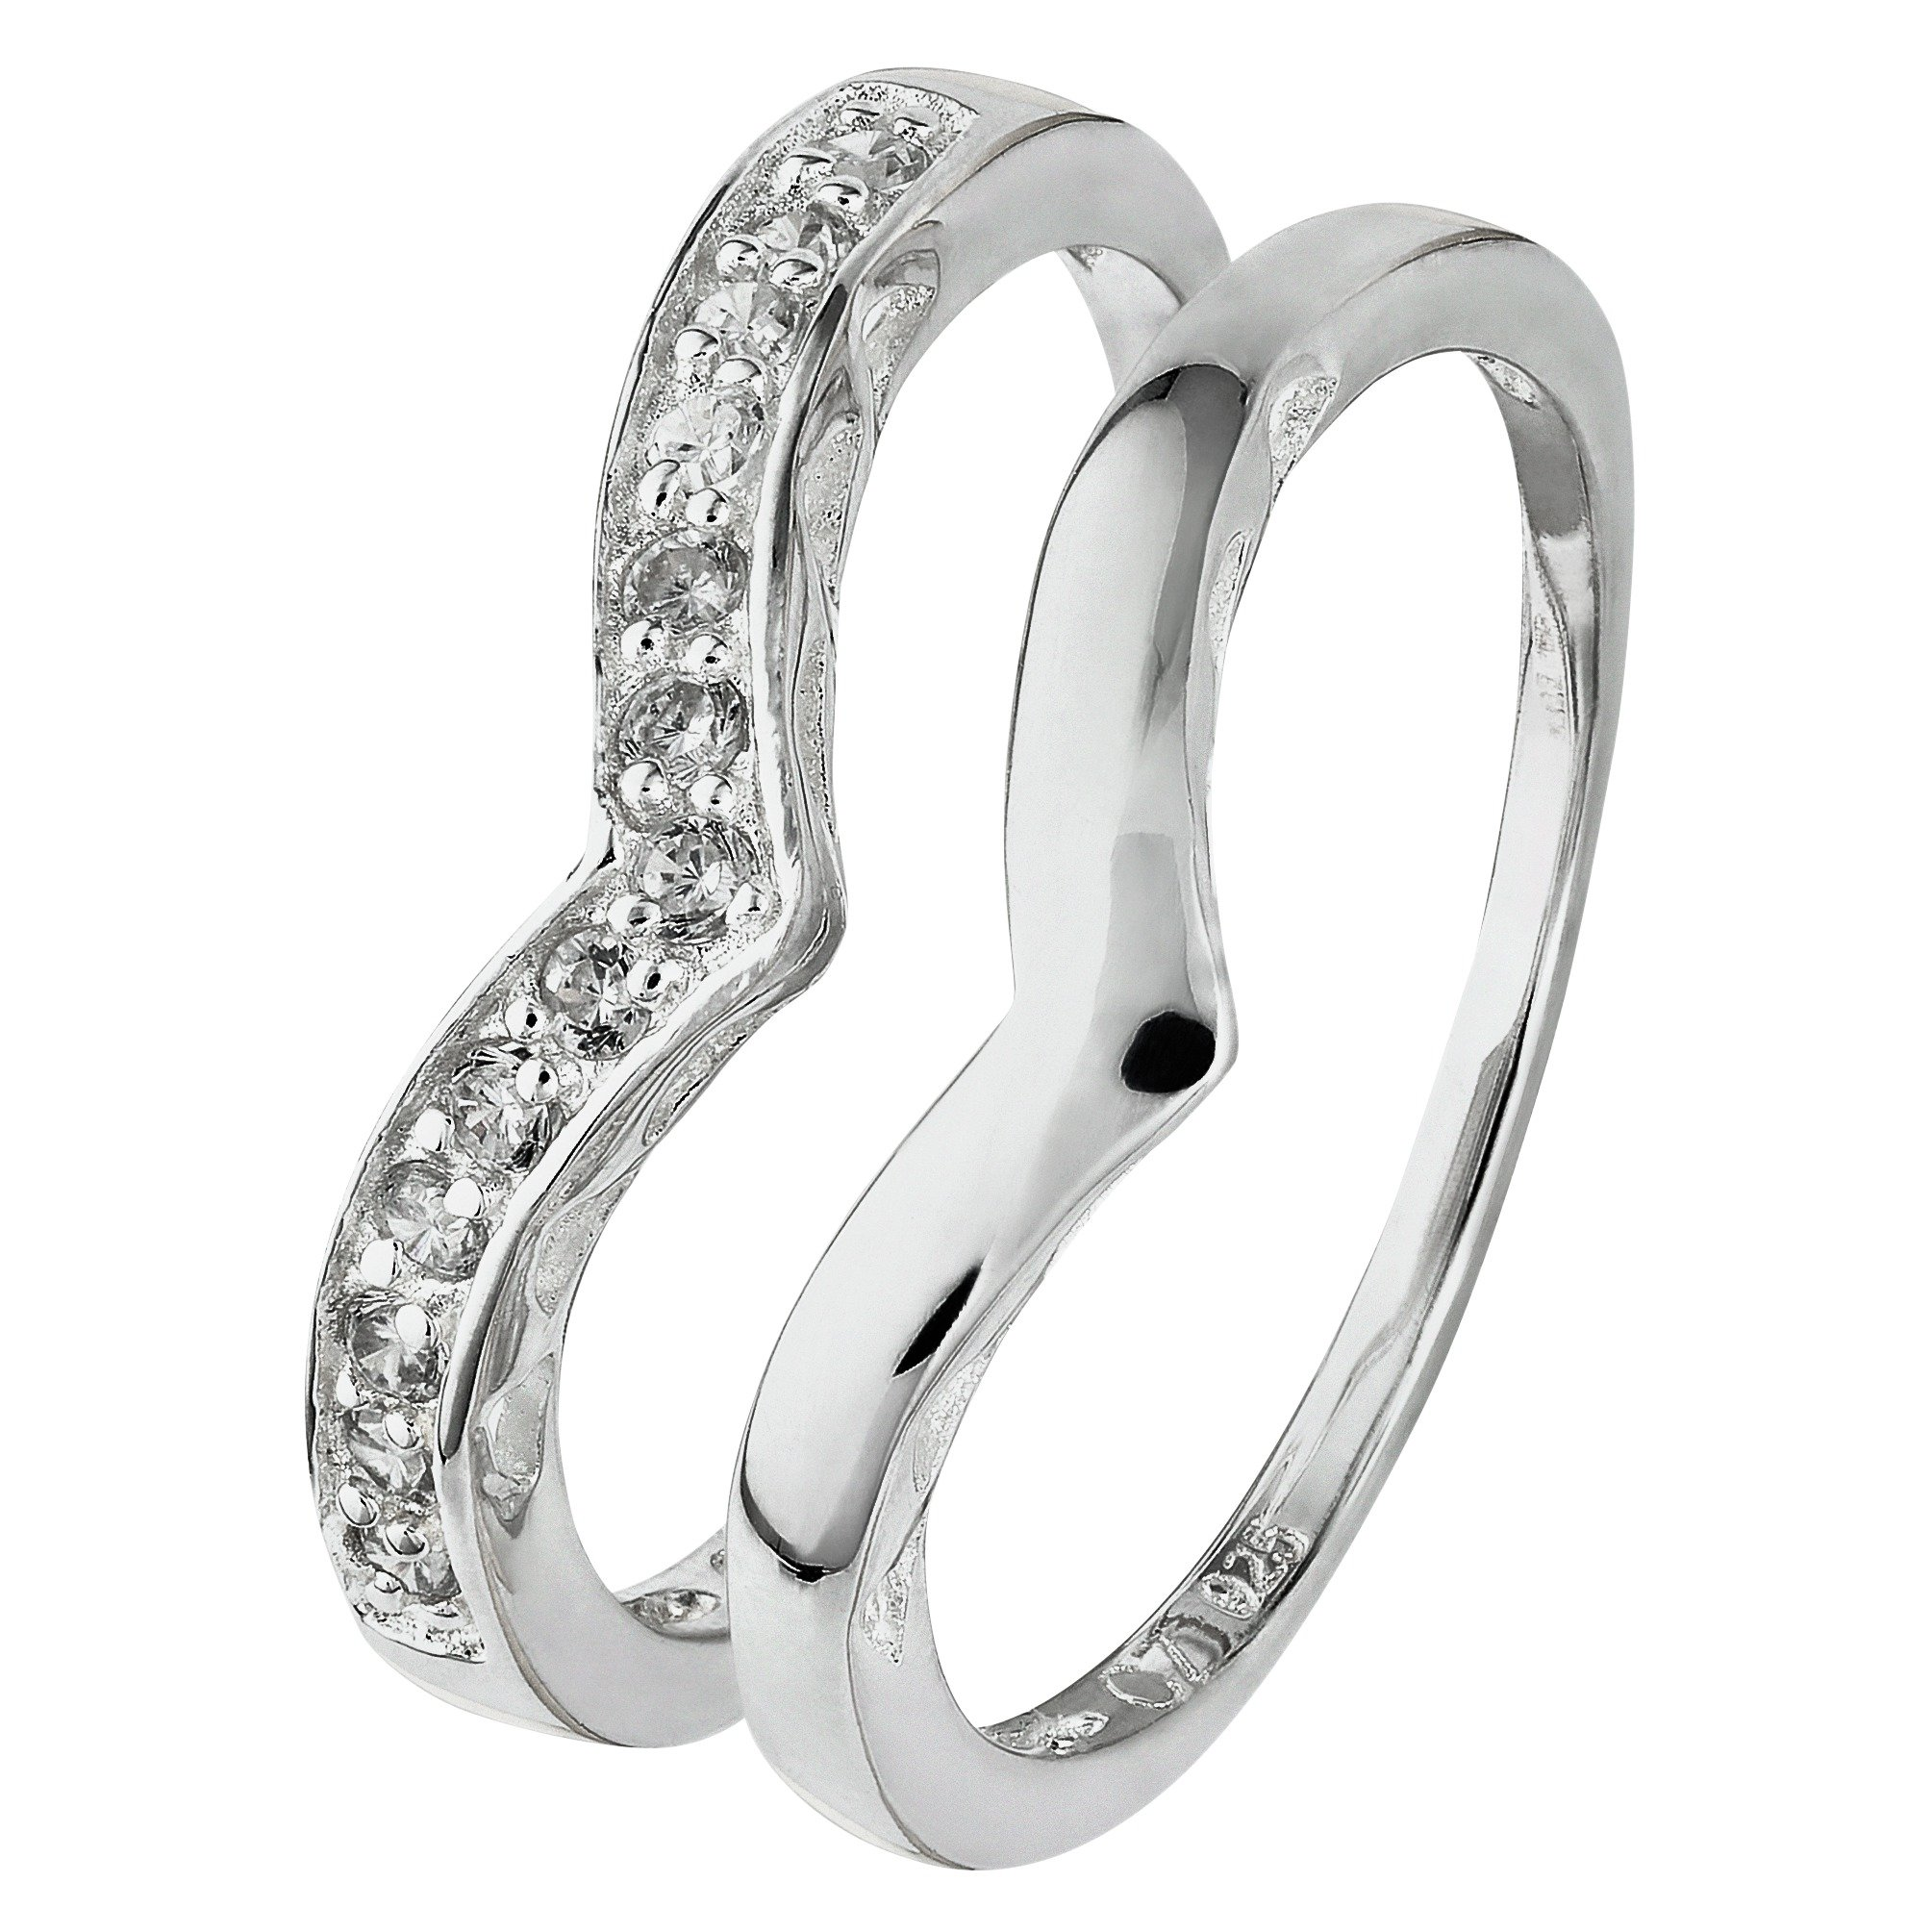 sterling-silver-cubic-zirconia-wishbone-ring-set-of-2